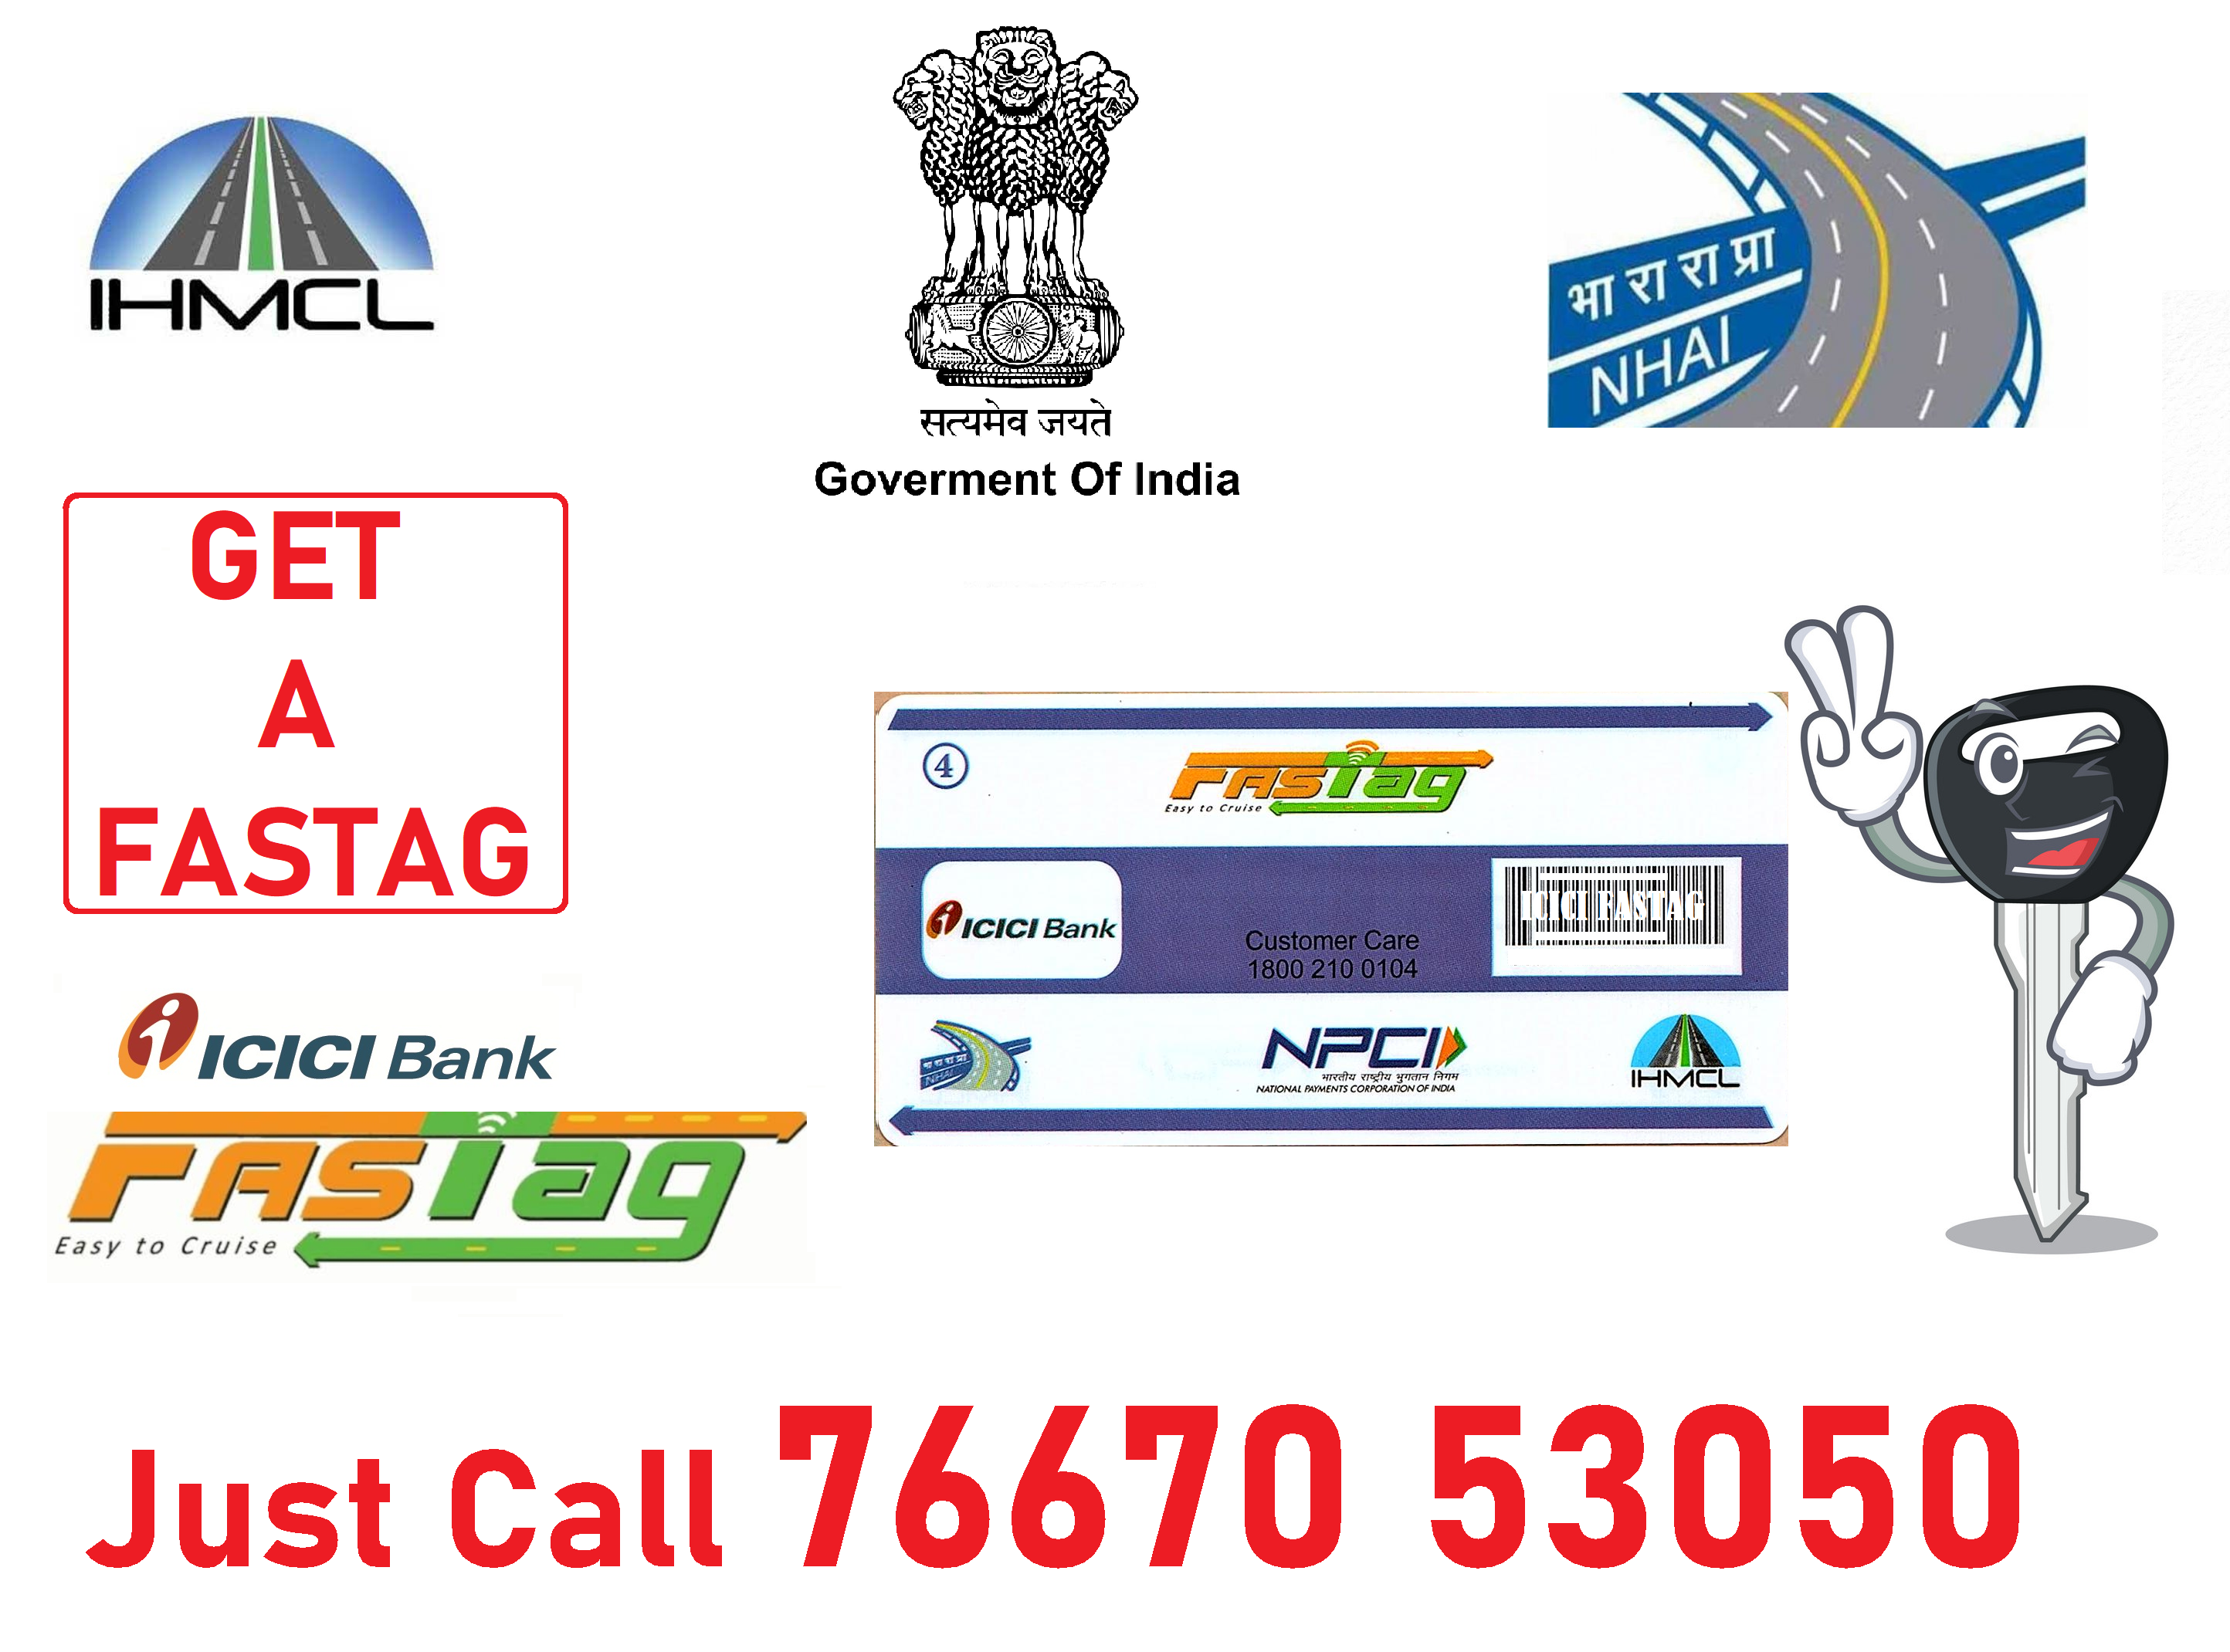 Just Call Icici Fastag Mobile 91 7667053050 Whatsapp Mobile 91 7667053050 Apply Online Http Fastag Online Apply Online How To Apply Solutions